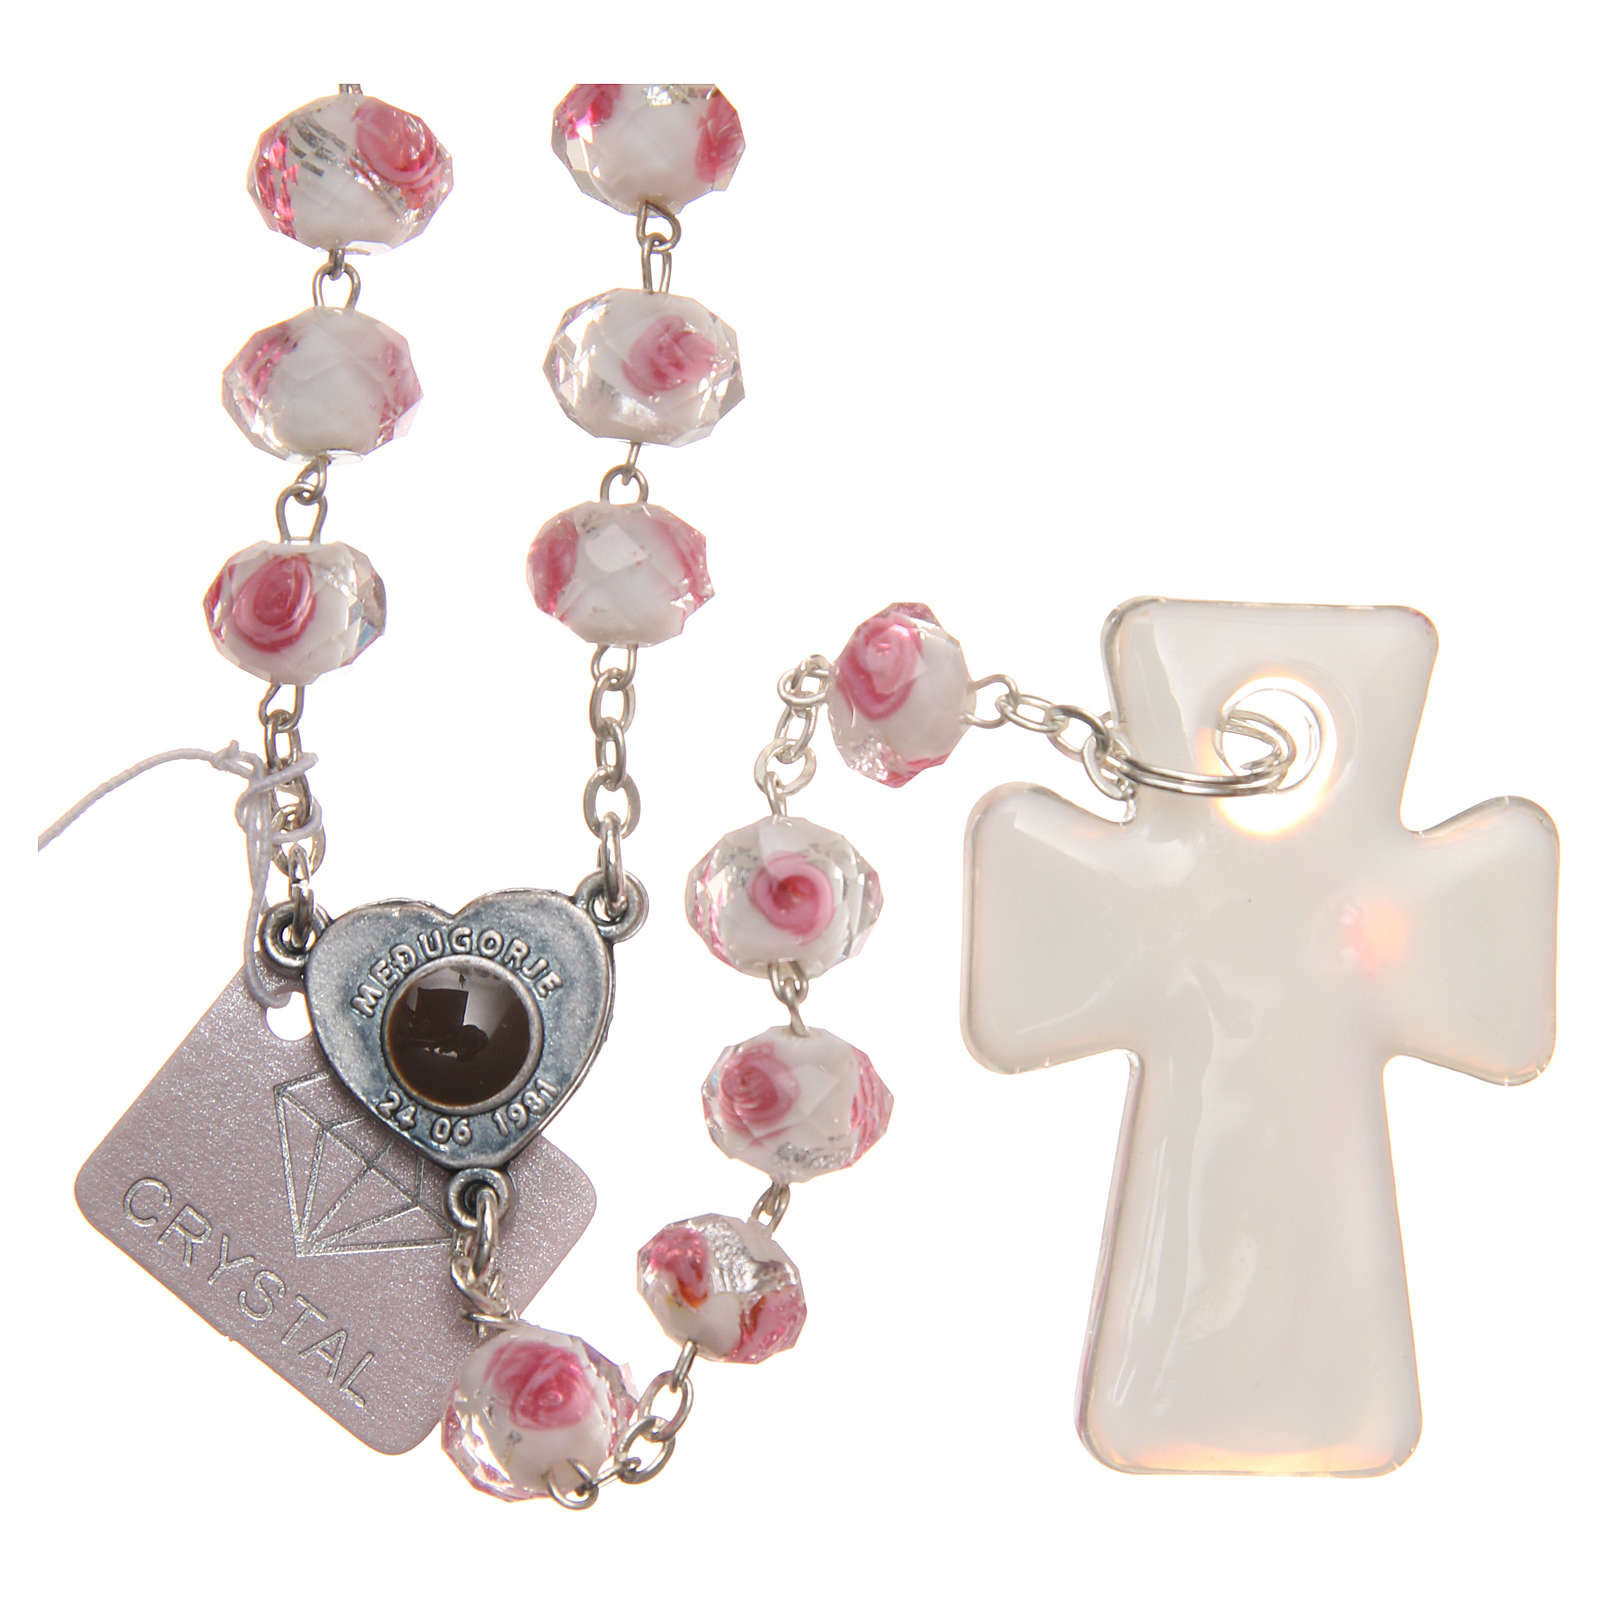 Medjugorje rosary with cross in white and pink Murano glass 4